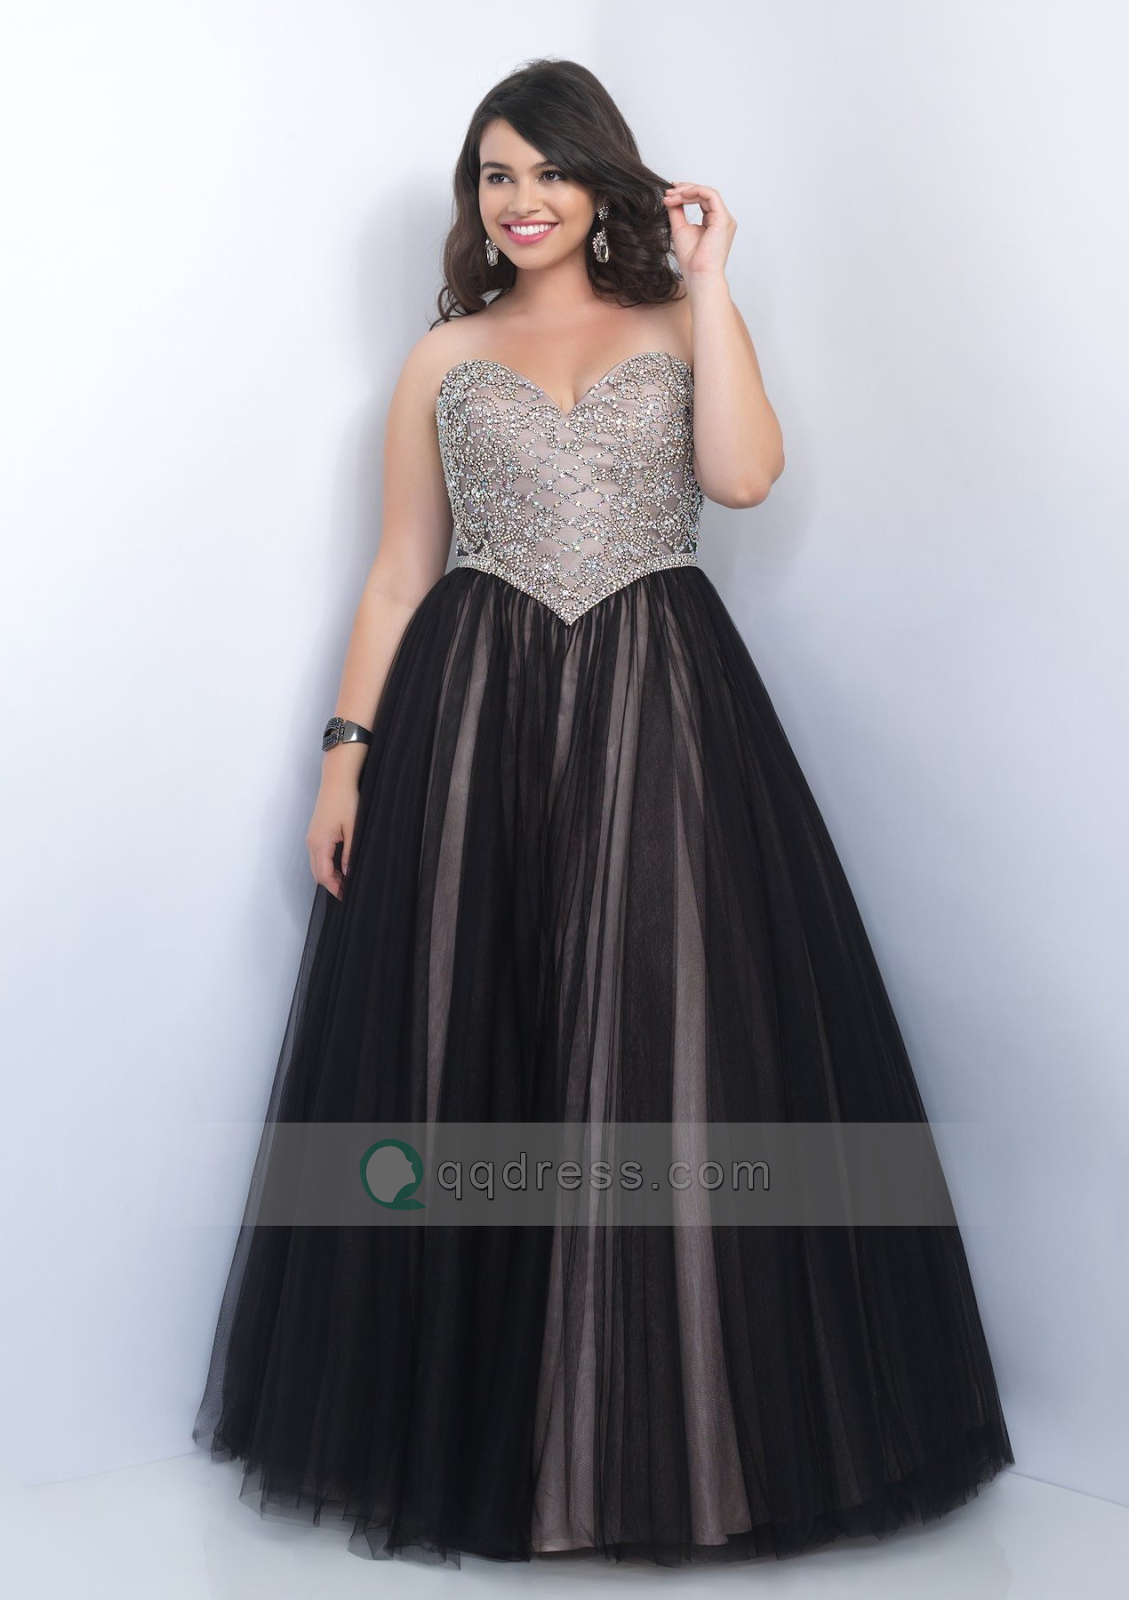 d199358220e This strapless sequin black gown is gorgeous. If your goal is to look like a  princess on prom night